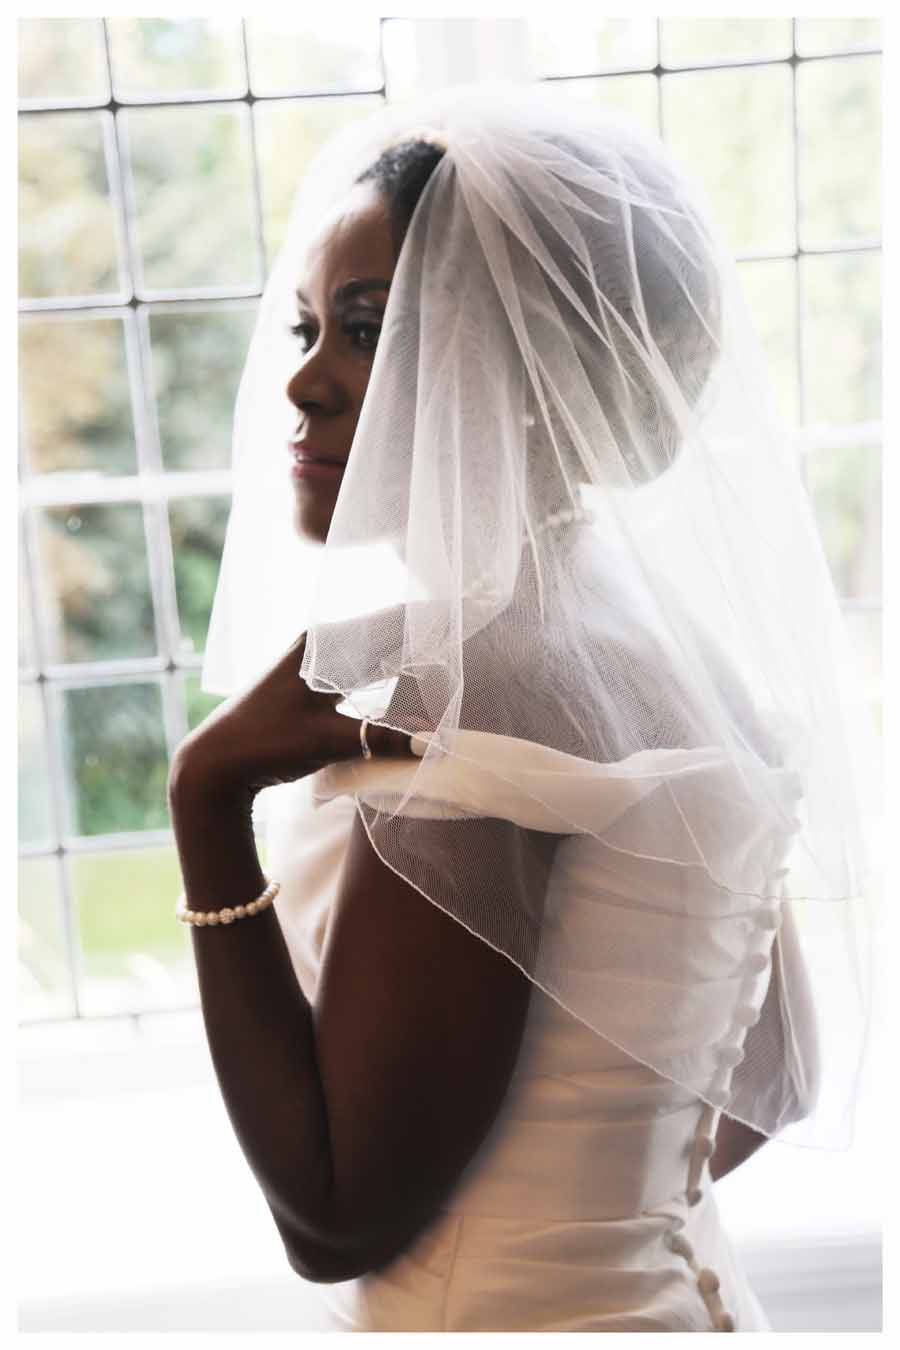 BRIDE Photos by Simeon Thaw copyright 2014 (7).jpg